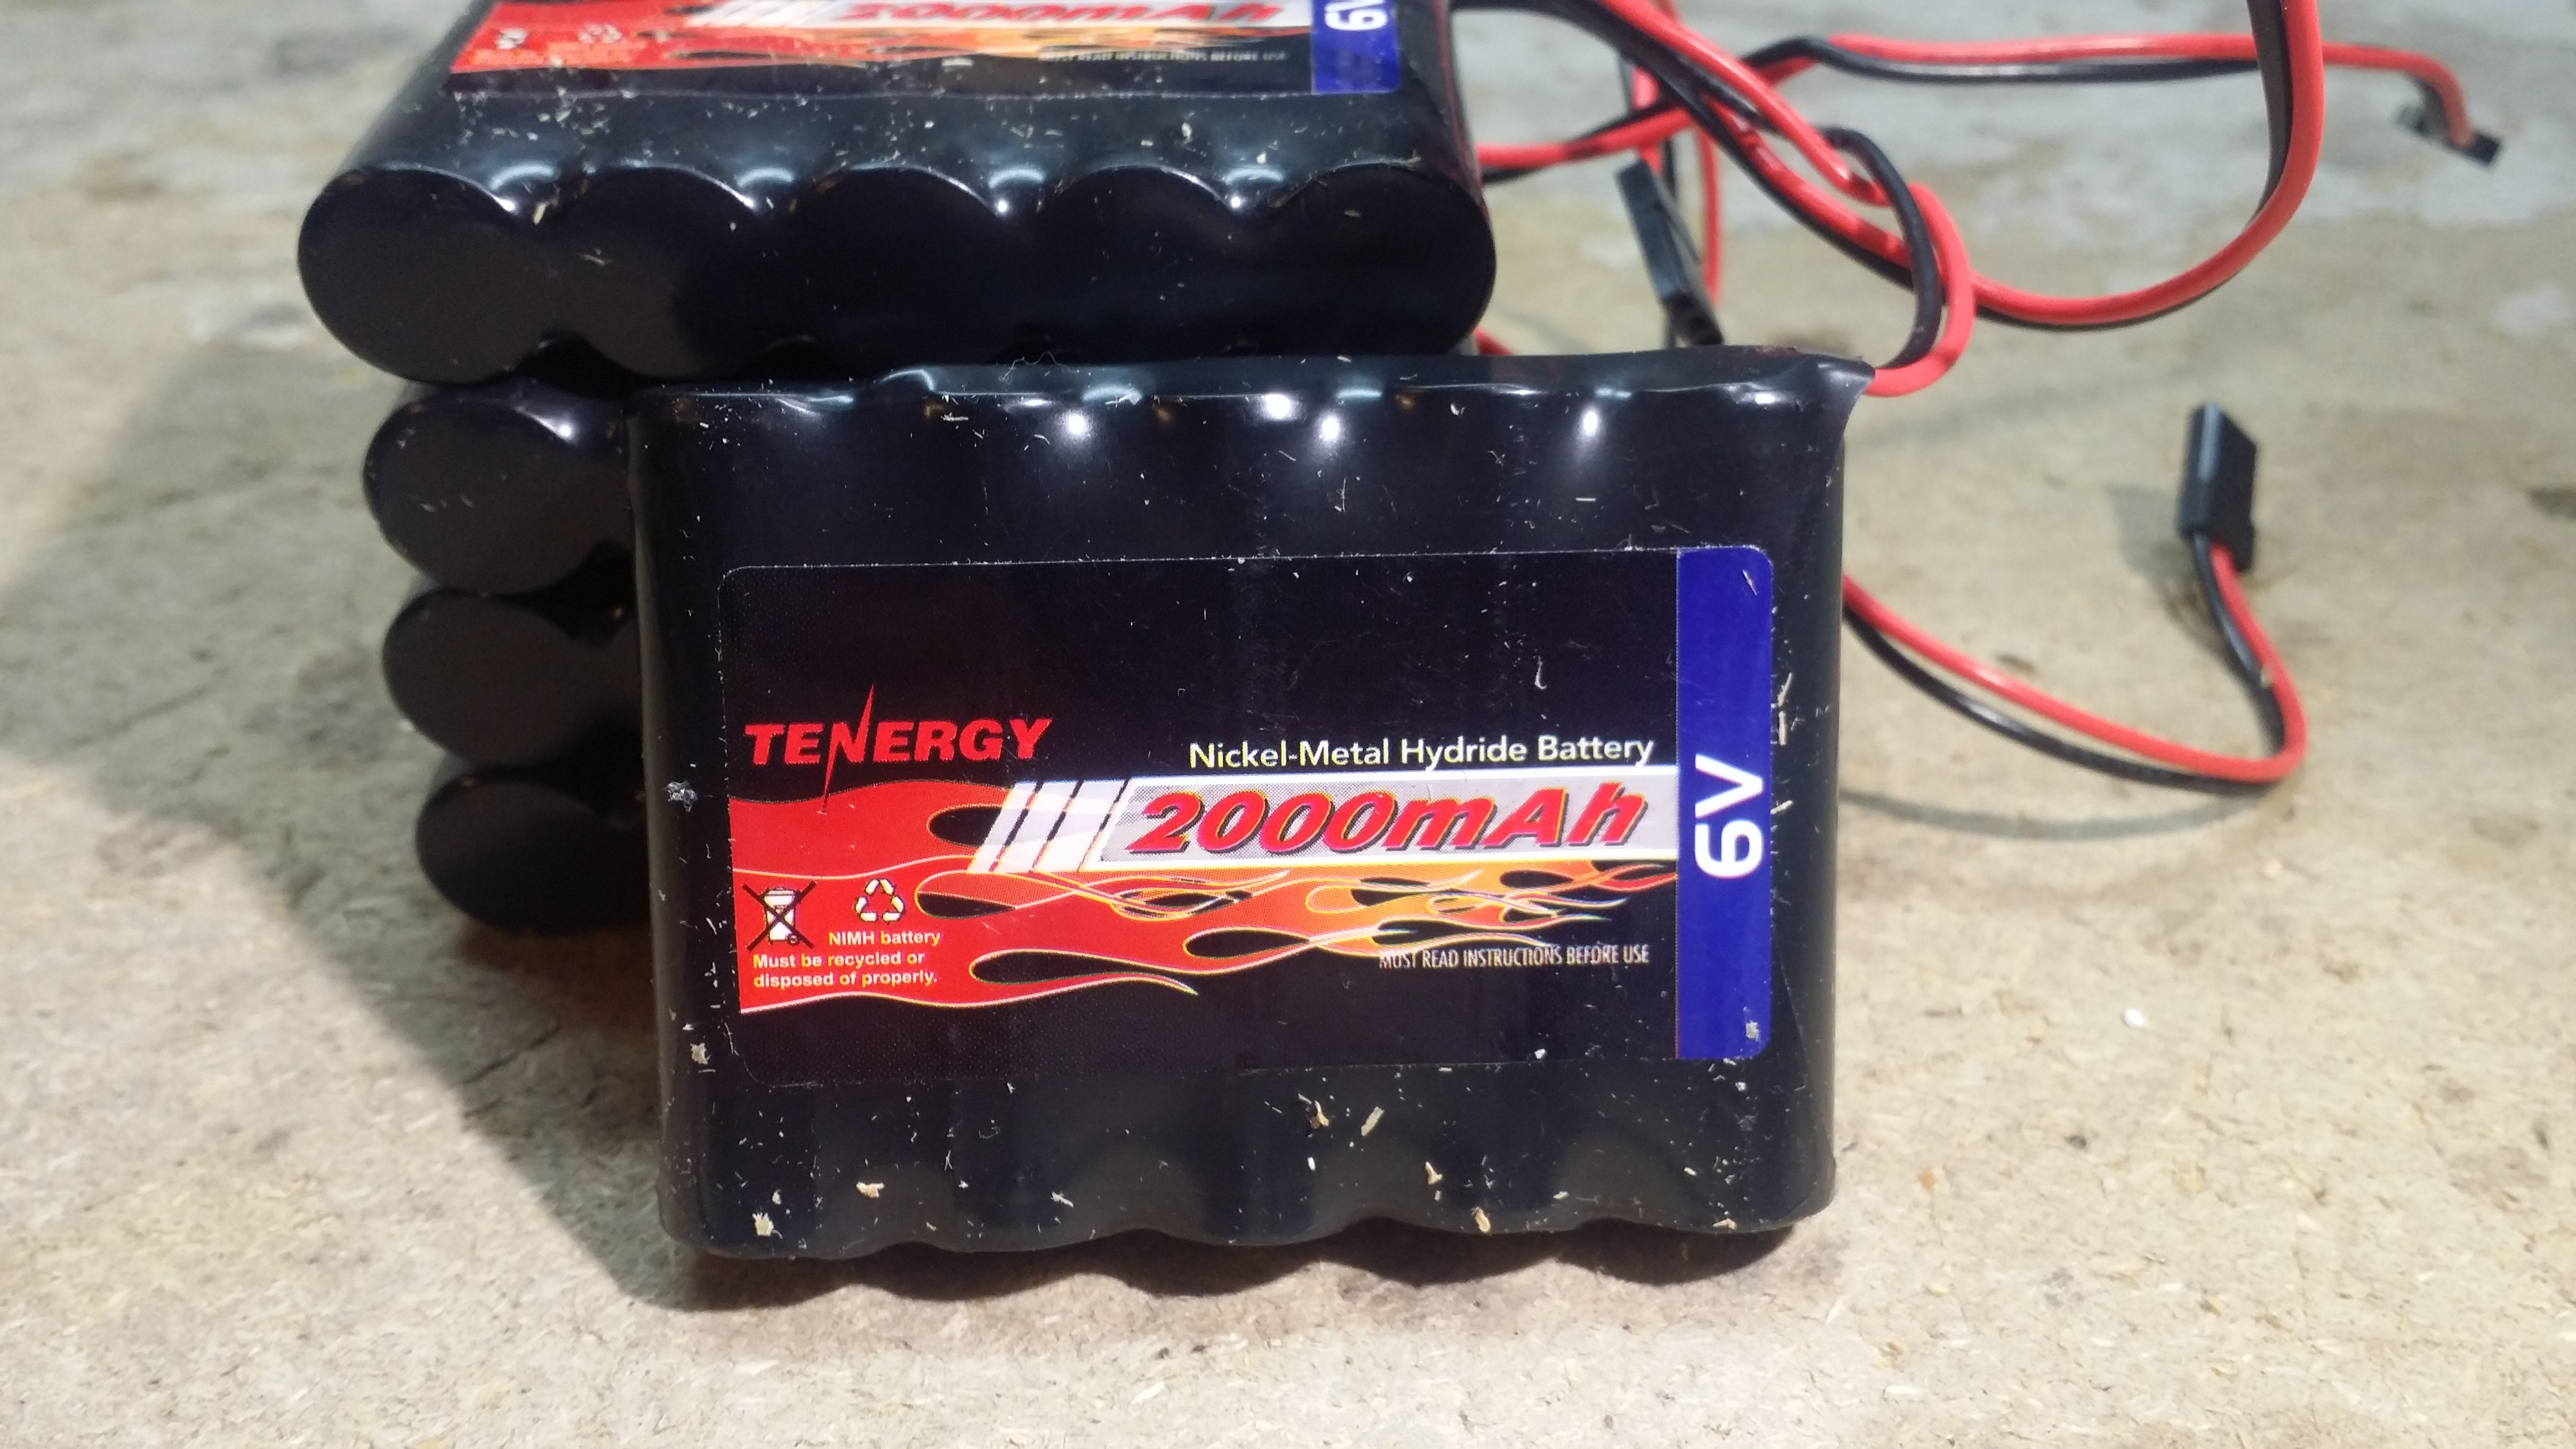 Click image for larger version  Name:batterys tenergy.jpg Views:40 Size:2.47 MB ID:2201672